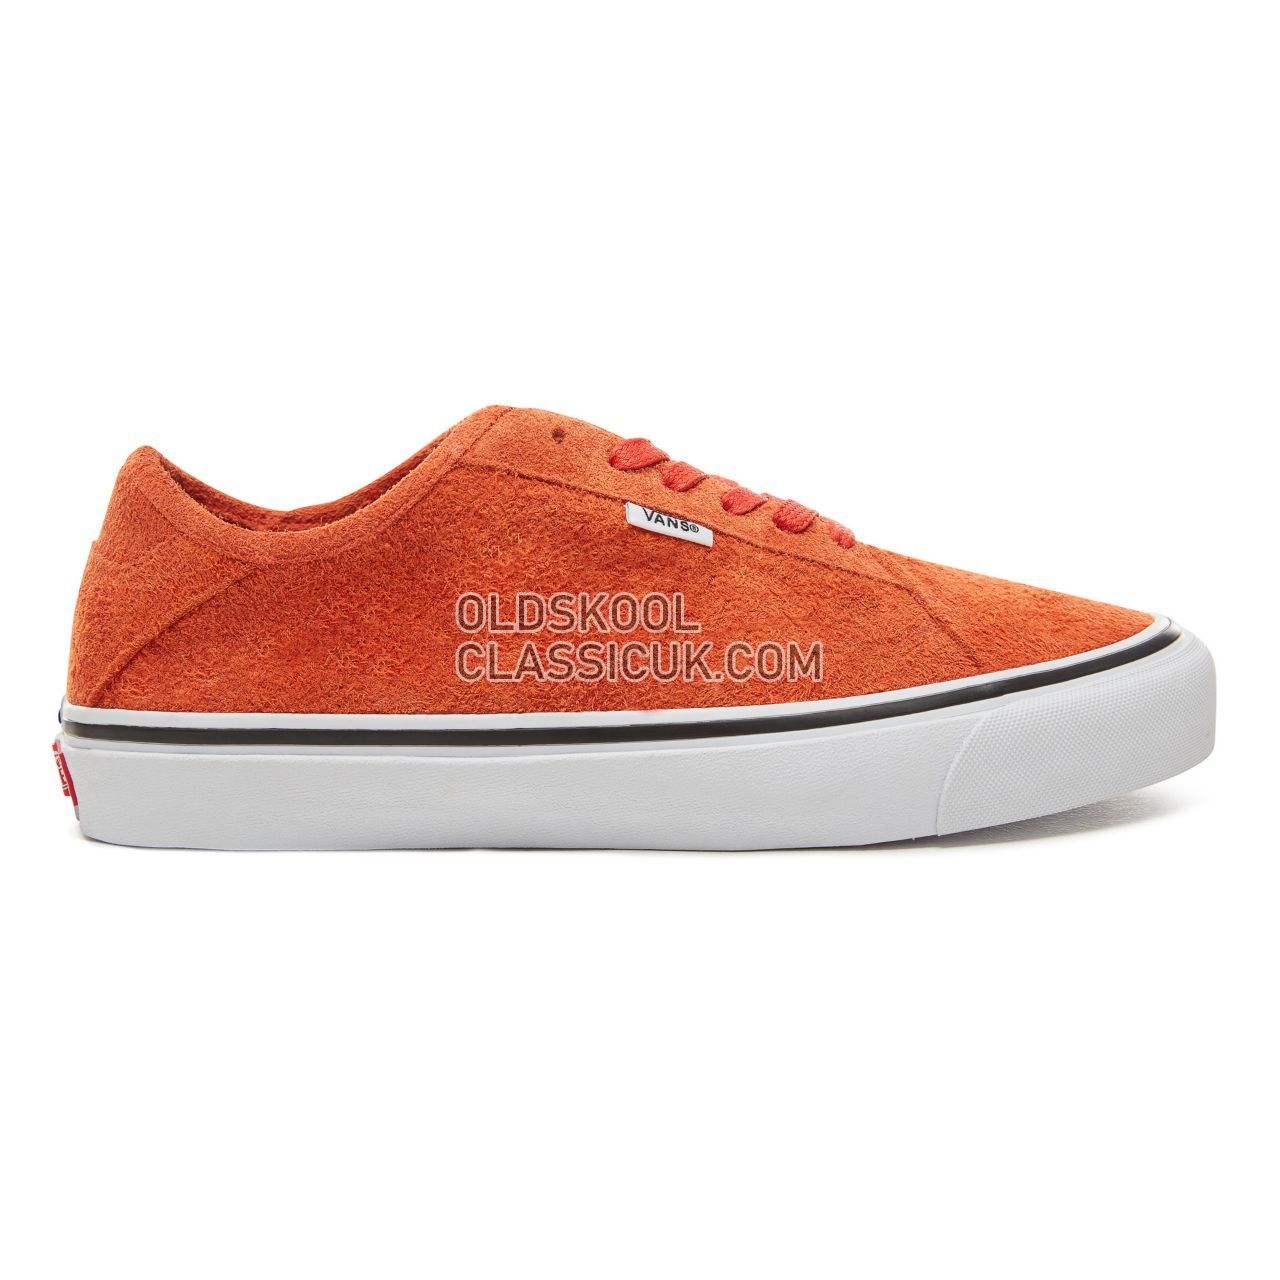 Vans Hairy Suede Diamo Ni Sneakers Mens (Hairy Suede) Pureed Pumpkin/True White VA3TKDU8B Shoes